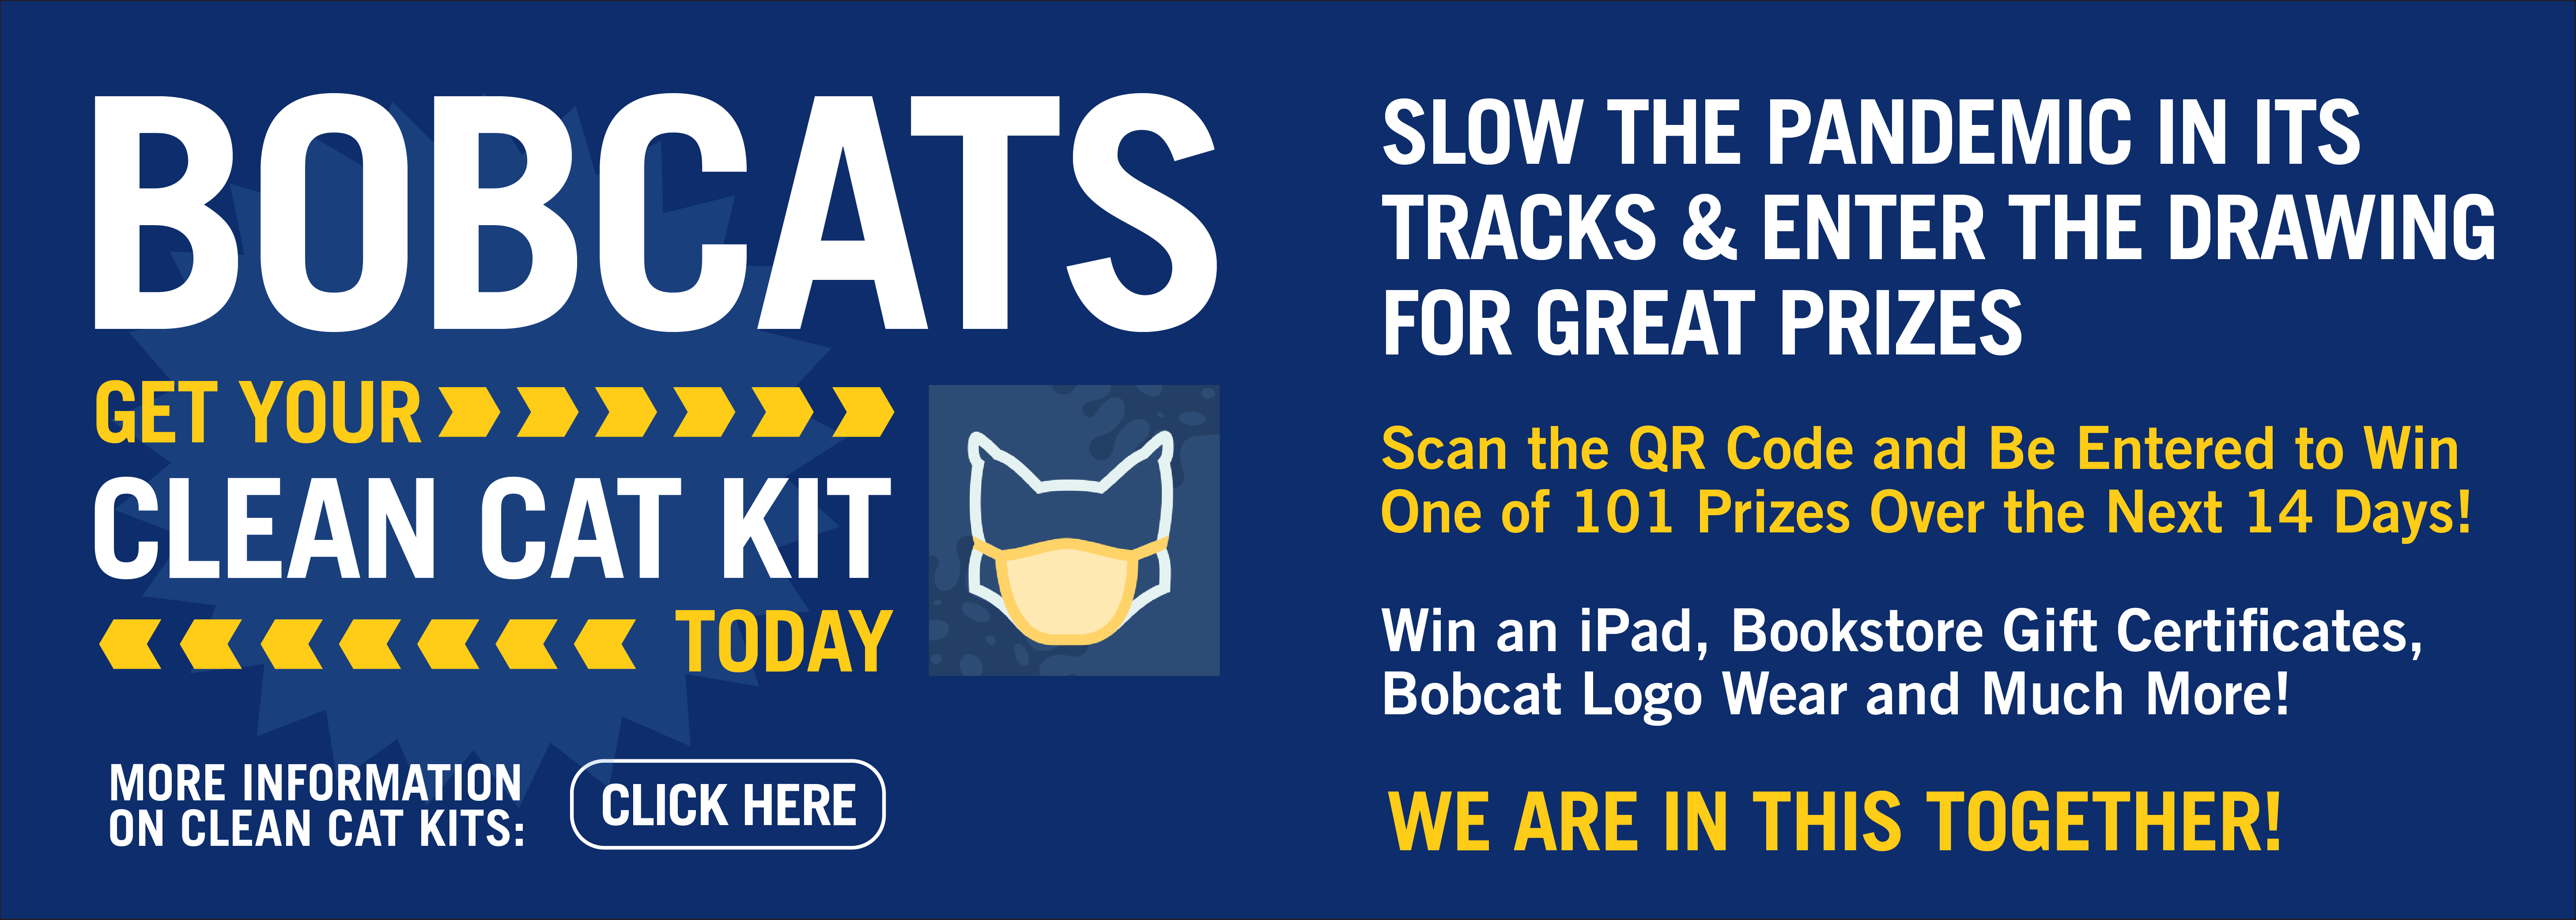 BOBCATS Get your clean cat kit today Slow the pandemic in its tracks & enter the drawing for great prizes Scan the QR Code and Be Entered to Win One of 101 Prizes Over the Next 14 Days! Win an ipad, bookstore gift certificates, bobcat logo wear and much more! We are in this together! Click this banner for more information